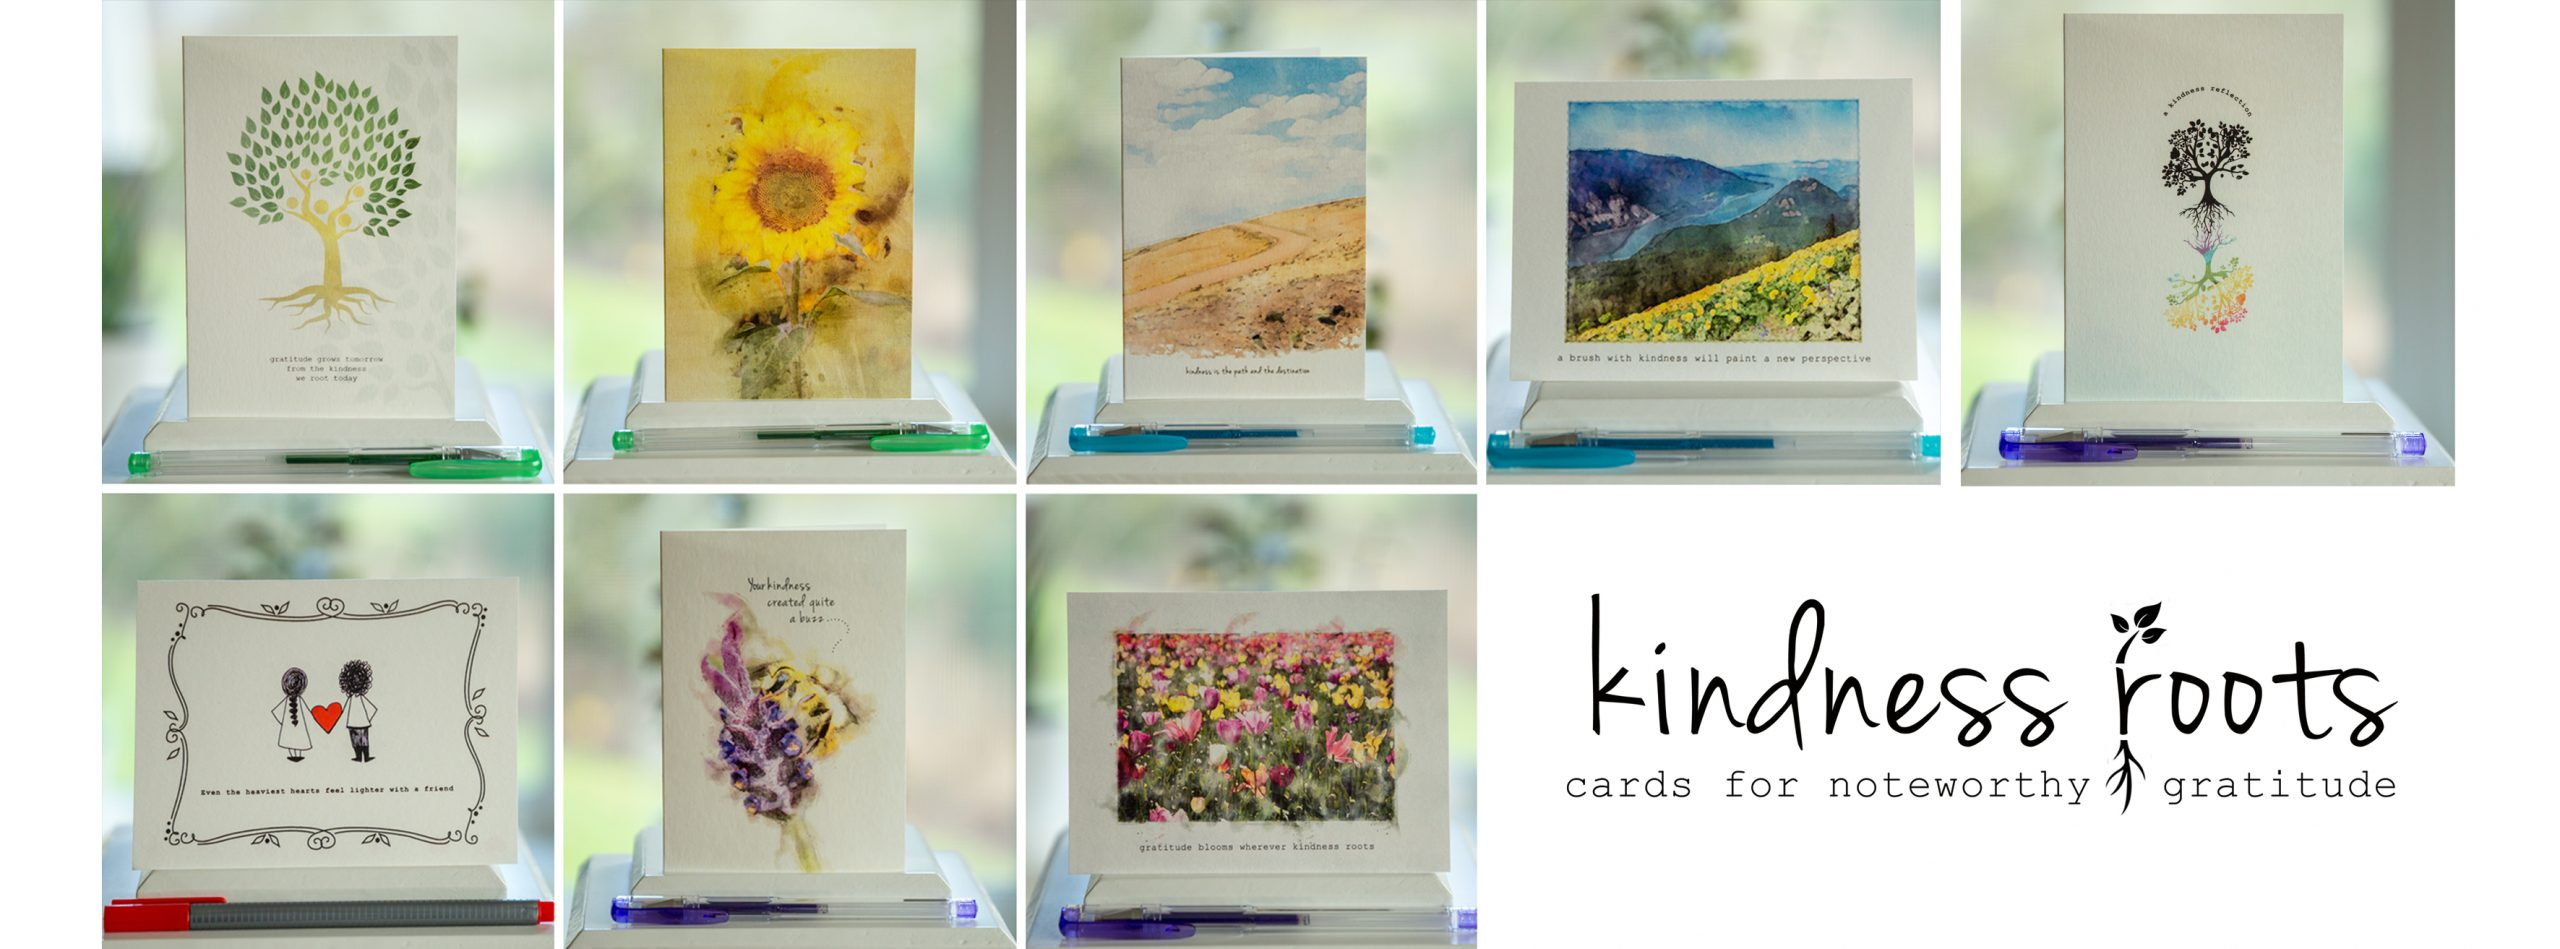 Selection of cards from Kindness Roots with a sunflower card on top.